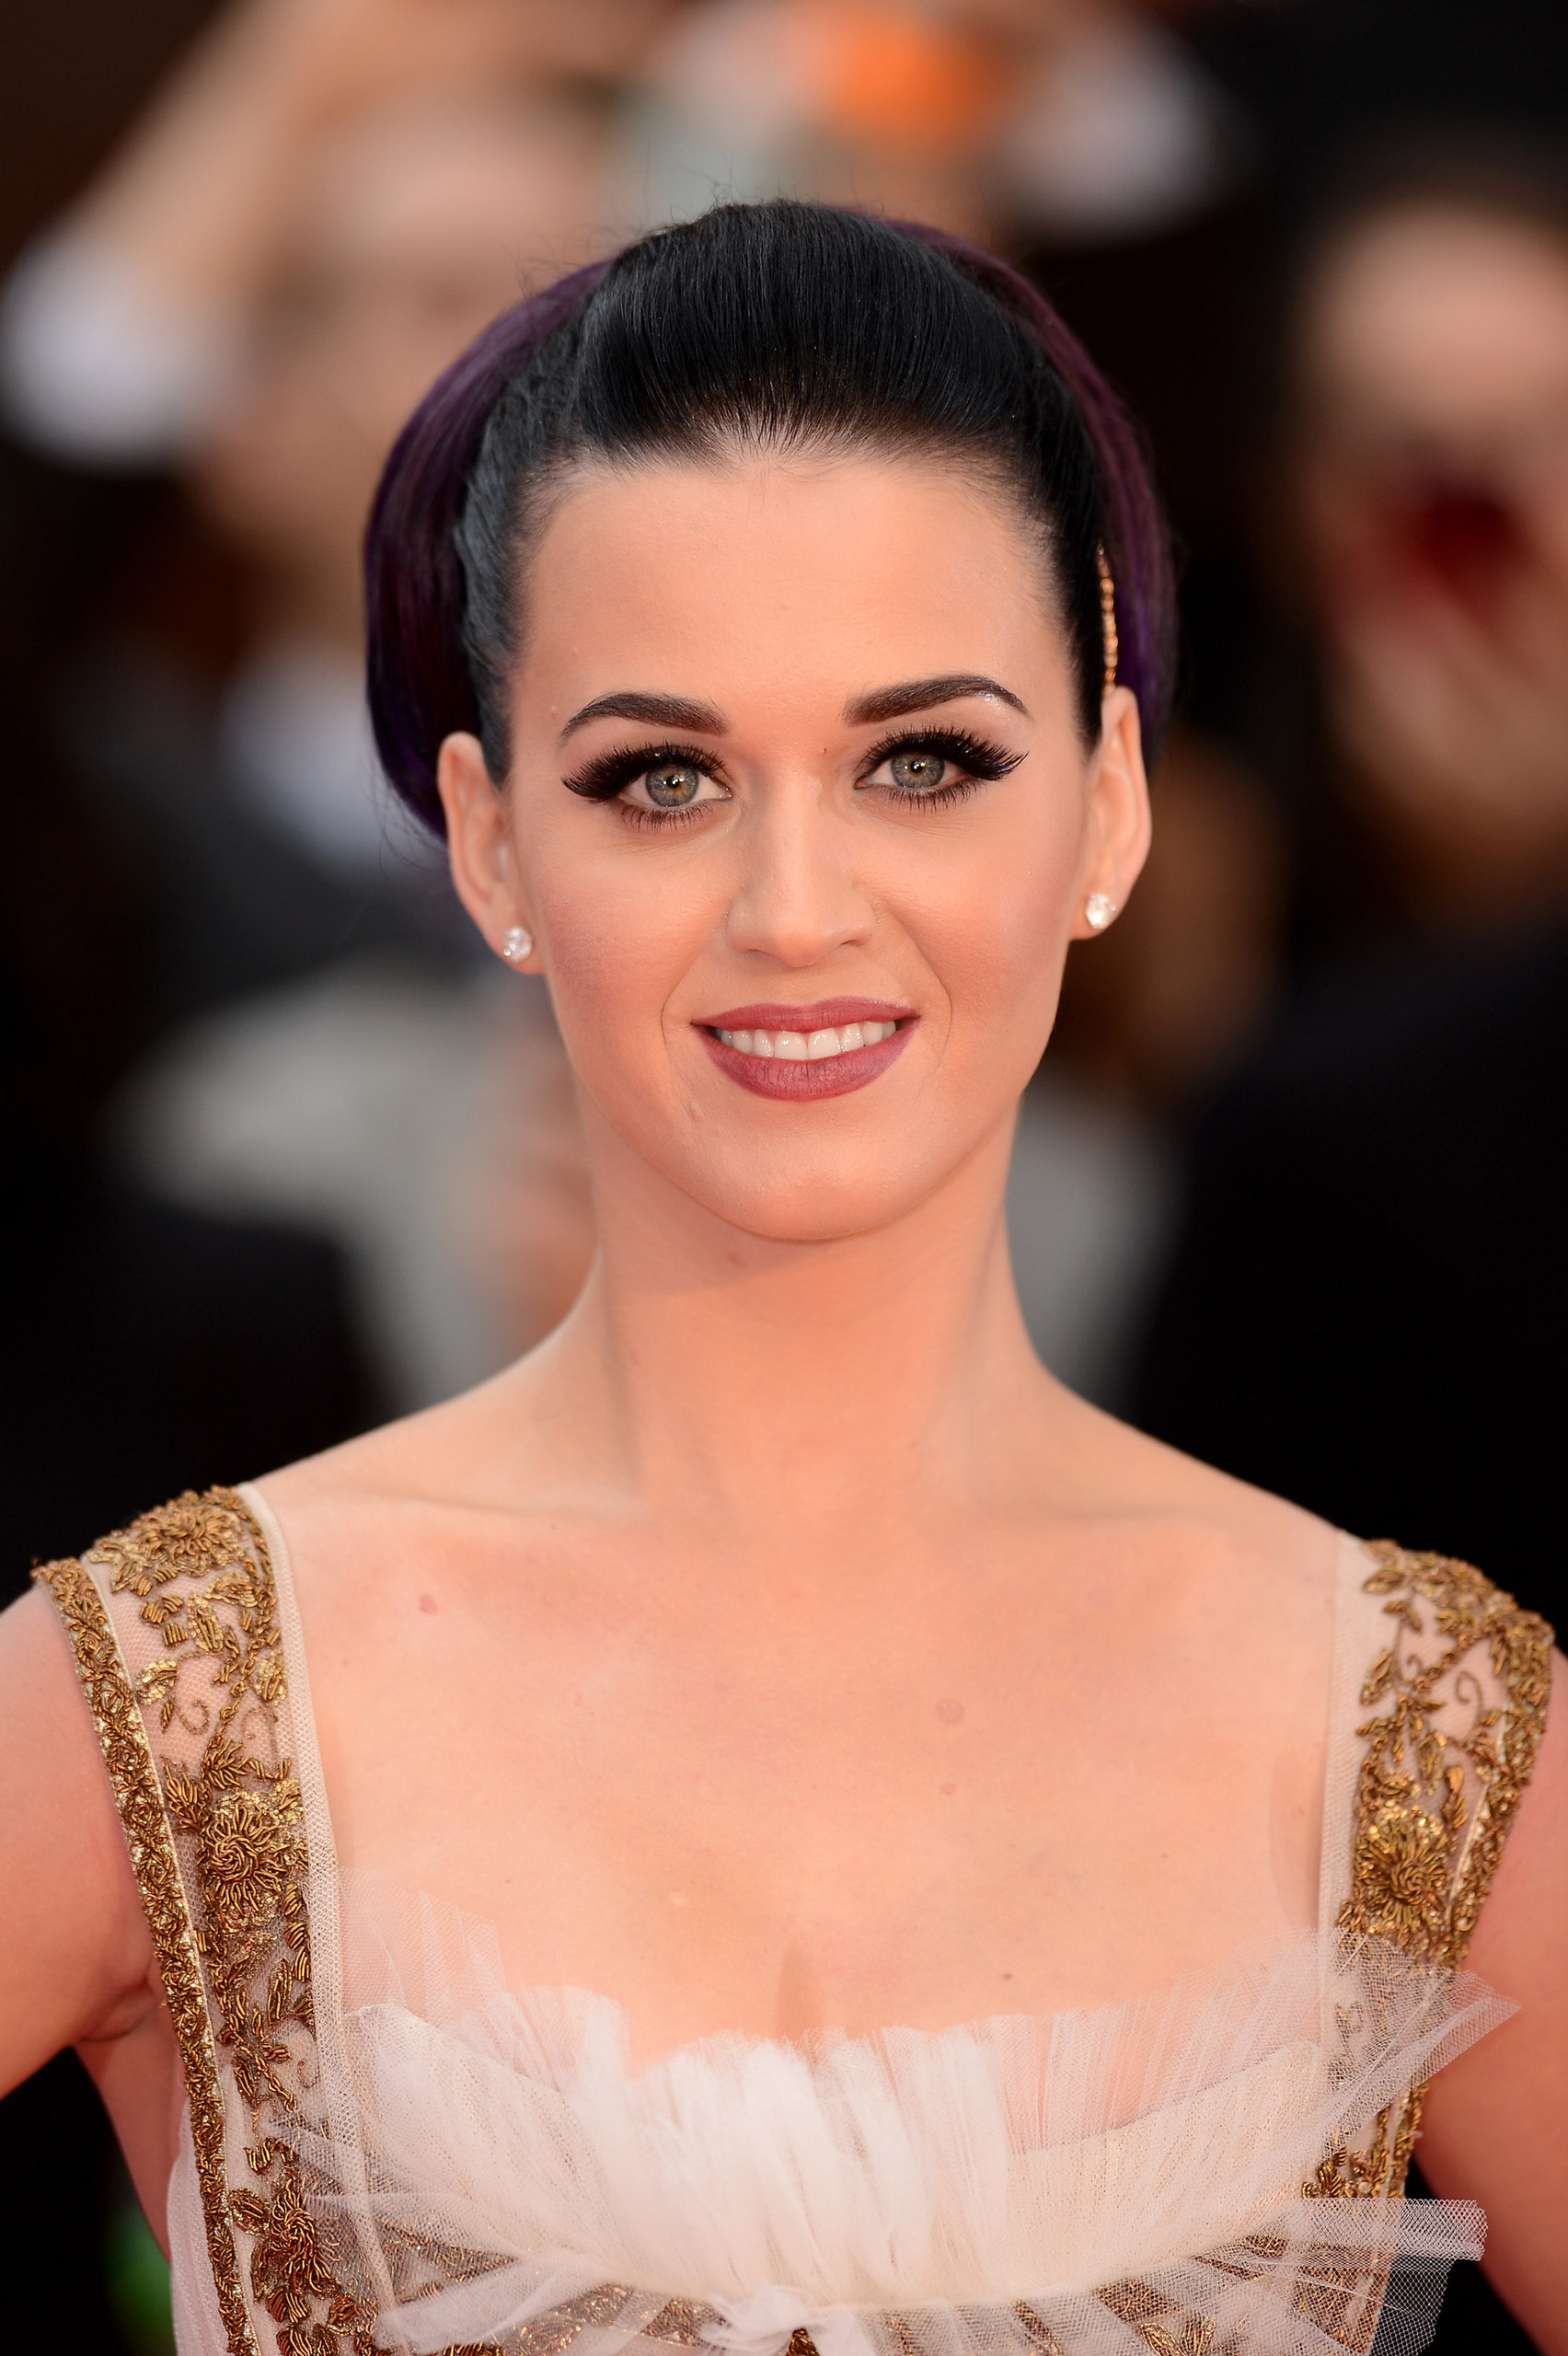 WWW_459RIRI_COM_uk premiere of \'katy perry: part of me\' [3 july 2012]